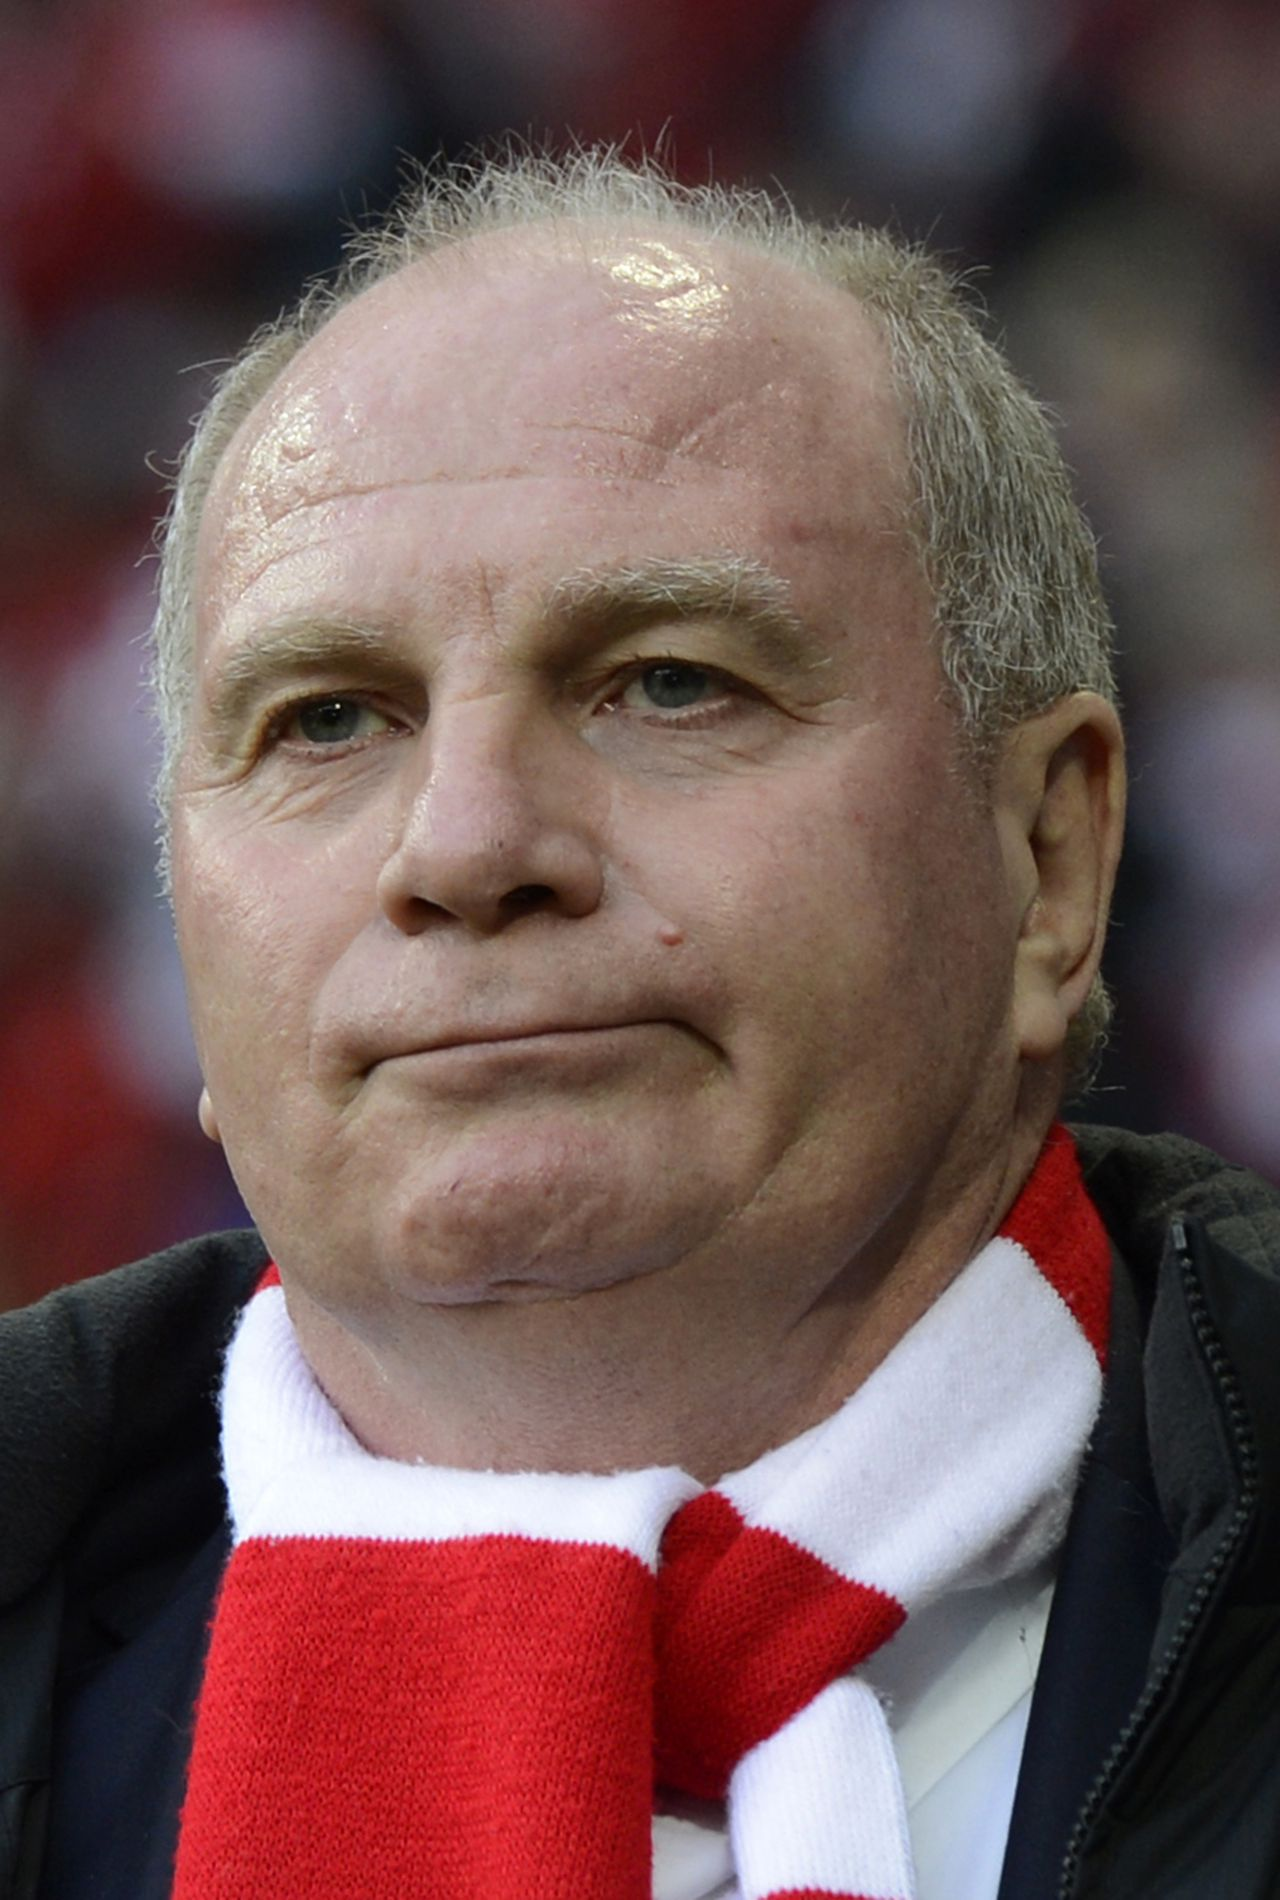 FILES - Picture taken on November 24, 2012 shows Bayern Munich's President Uli Hoeness ahead of the German first division Bundesliga football match FC Bayern Munich vs Hanover 96 in Munich, southern Germany. Hoeness has admitted in an interview with German weekly 'Die Zeit' that he is going through 'hell' as the tax evasion scandal he has become caught up in shows no signs of abating. AFP PHOTO / CHRISTOF STACHE